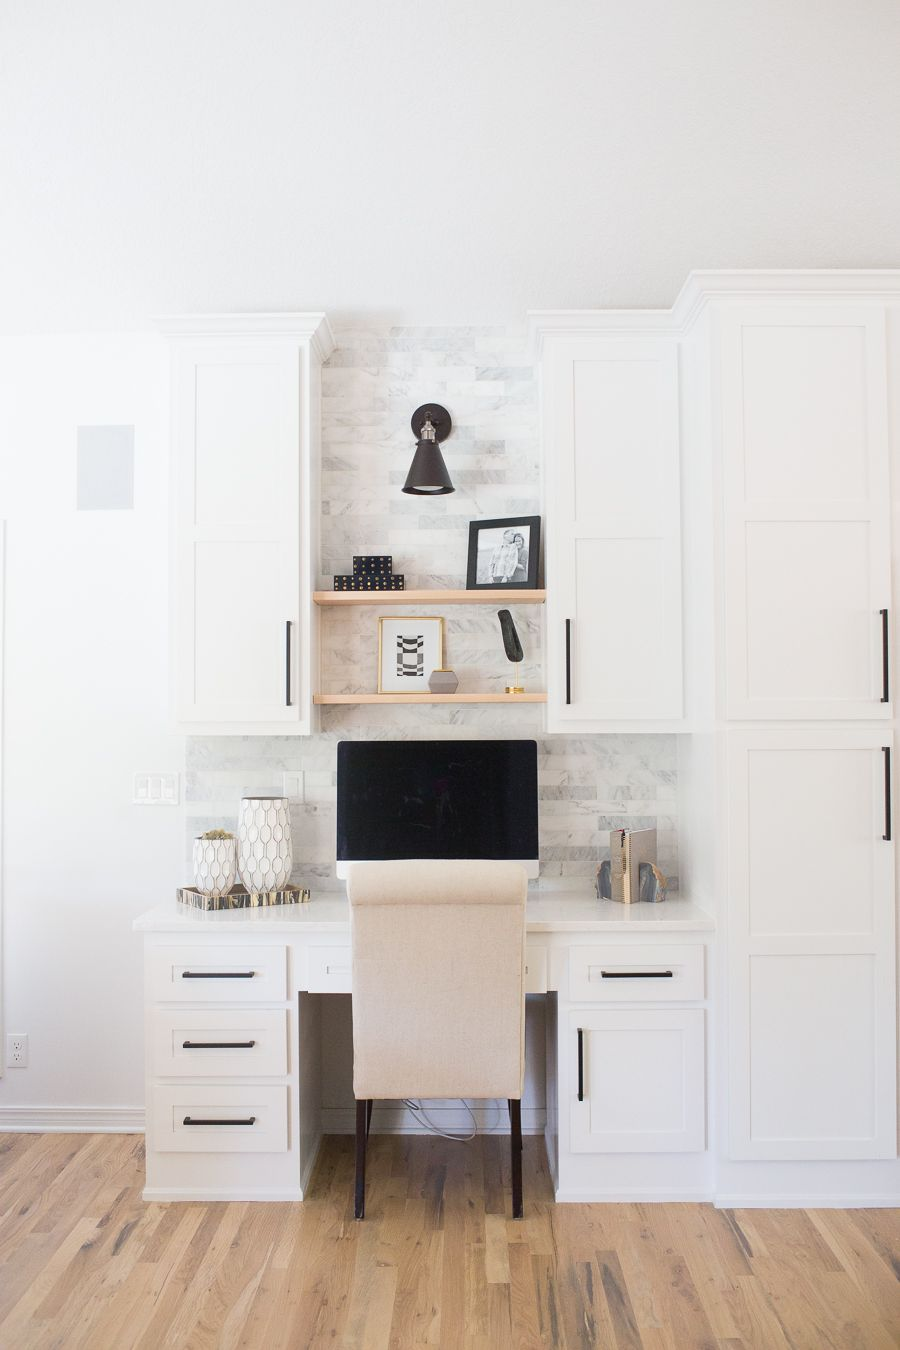 Cc And Mike Tulsa Remodel Reveal Cc And Mike Lifestyle And Design Blog Kitchen Desks Home Office Decor Kitchen Desk Areas